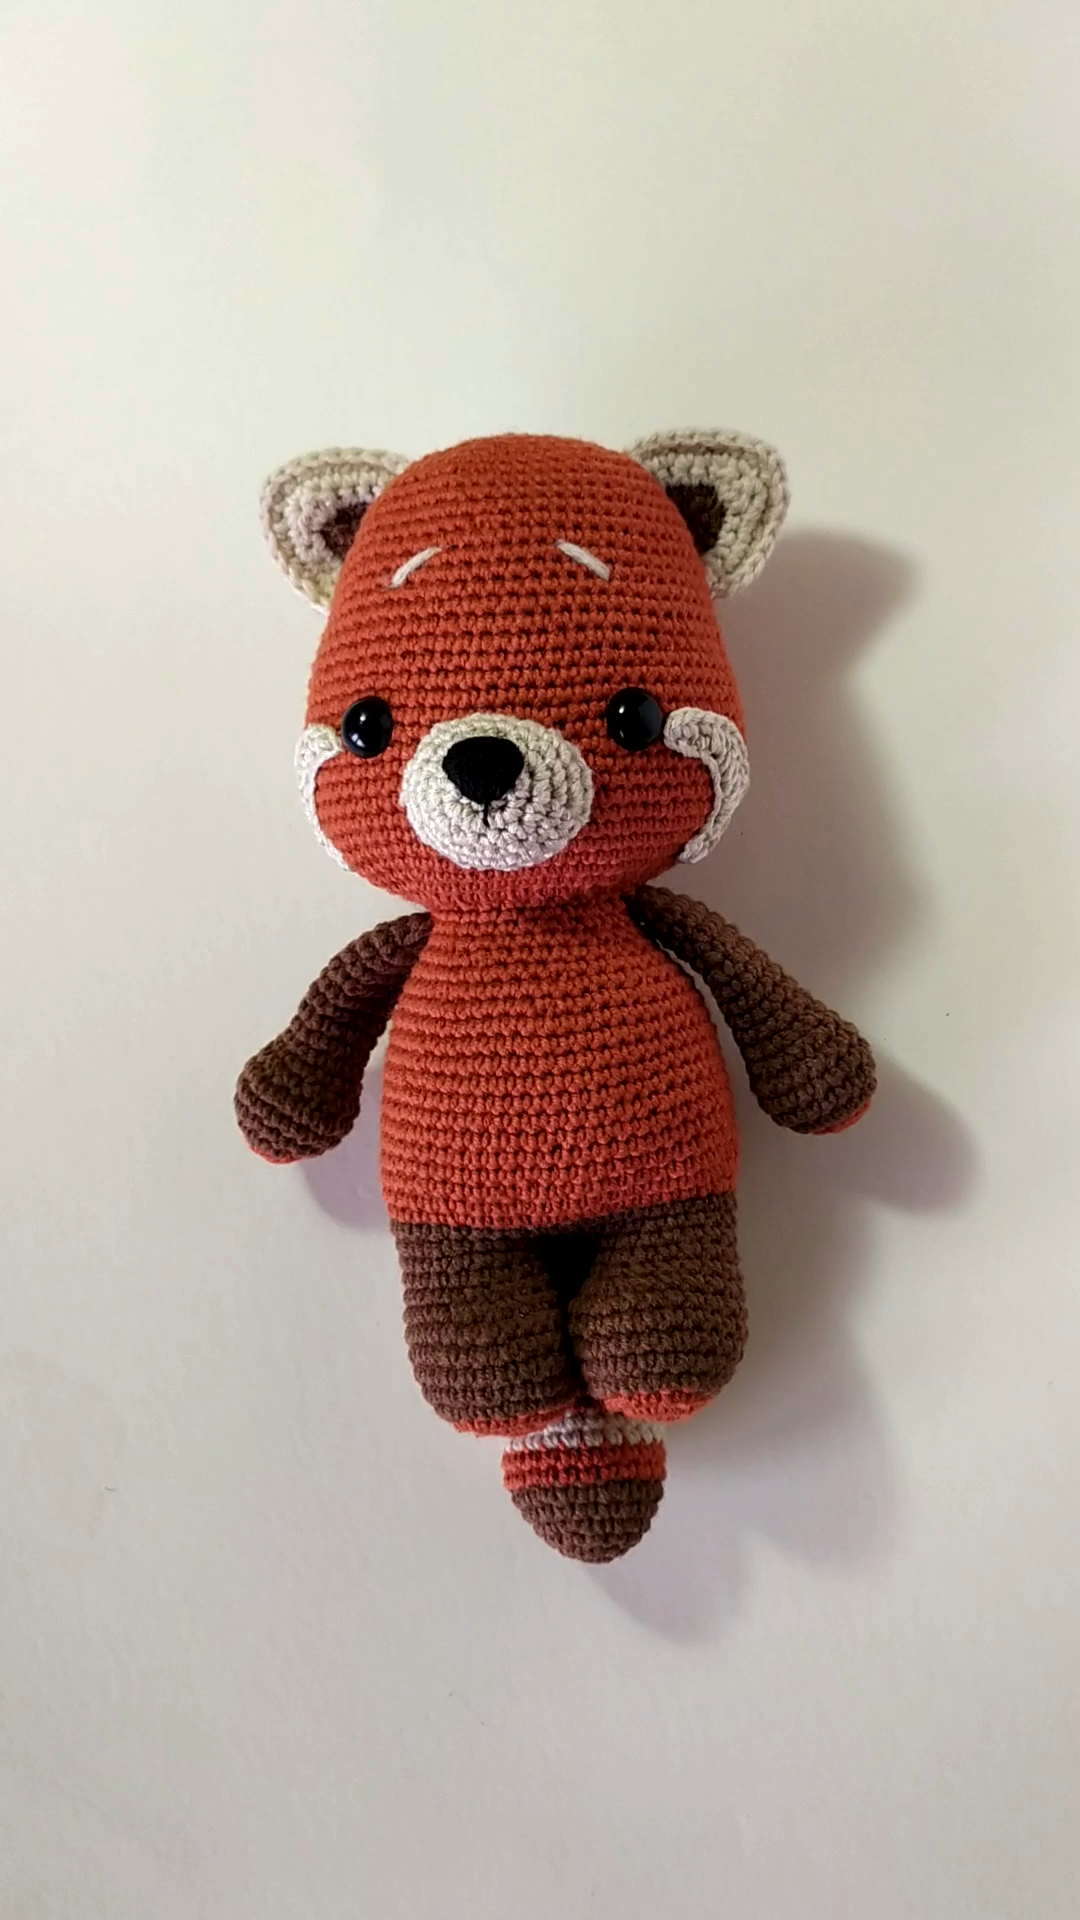 Red Panda in Watermelon outfit from Berry bears amigurumi patterns